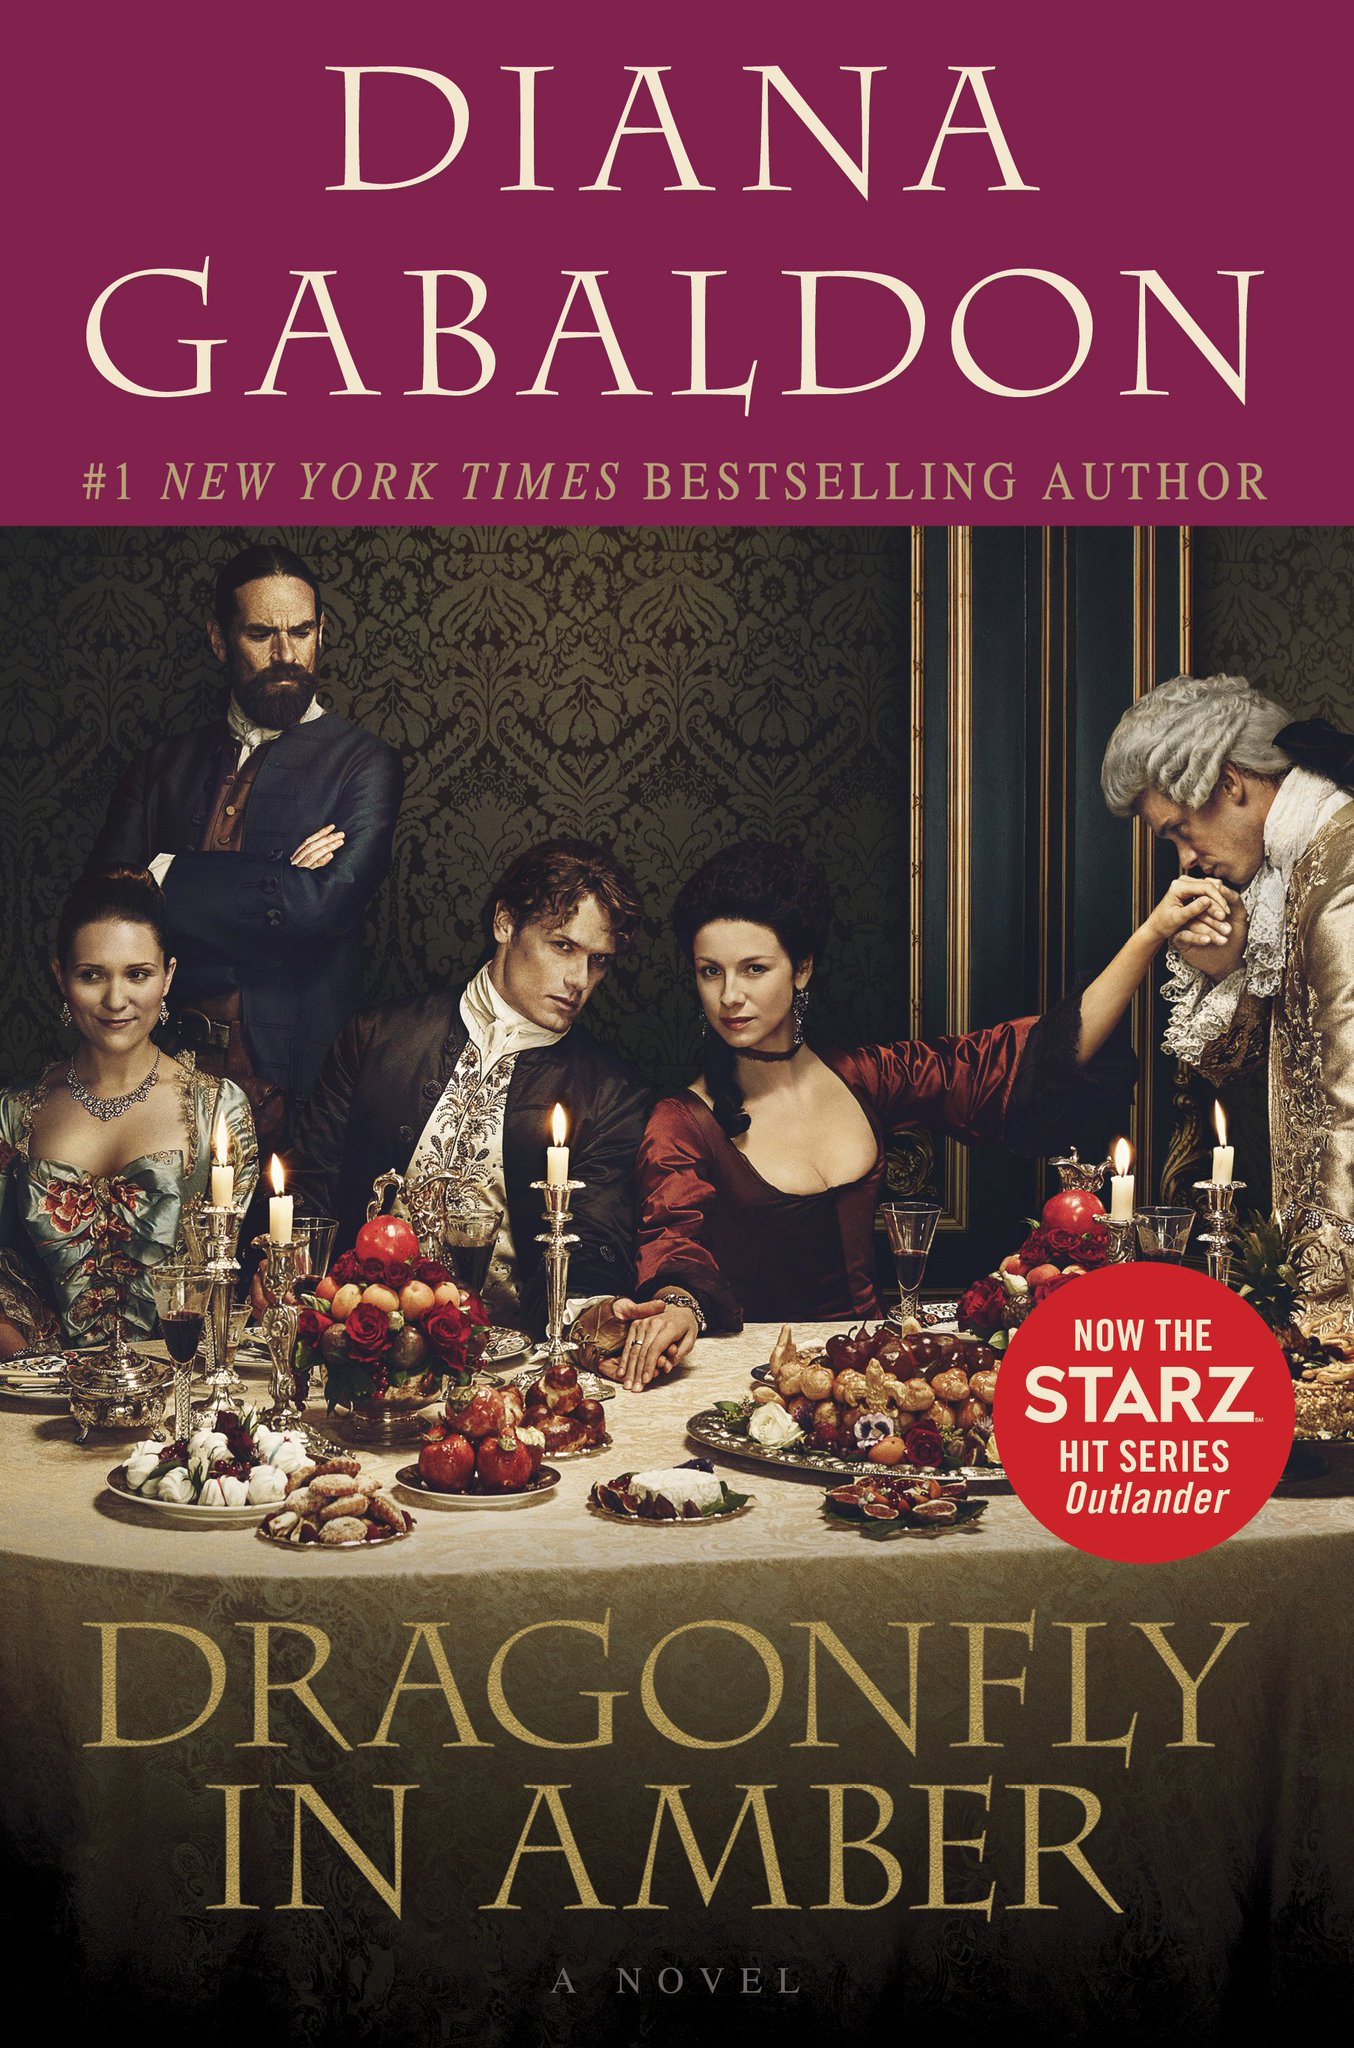 Diana Gabaldon Writer Dg Twitter Diana Gabaldon On Twitter Quotand To Go With The Season Two